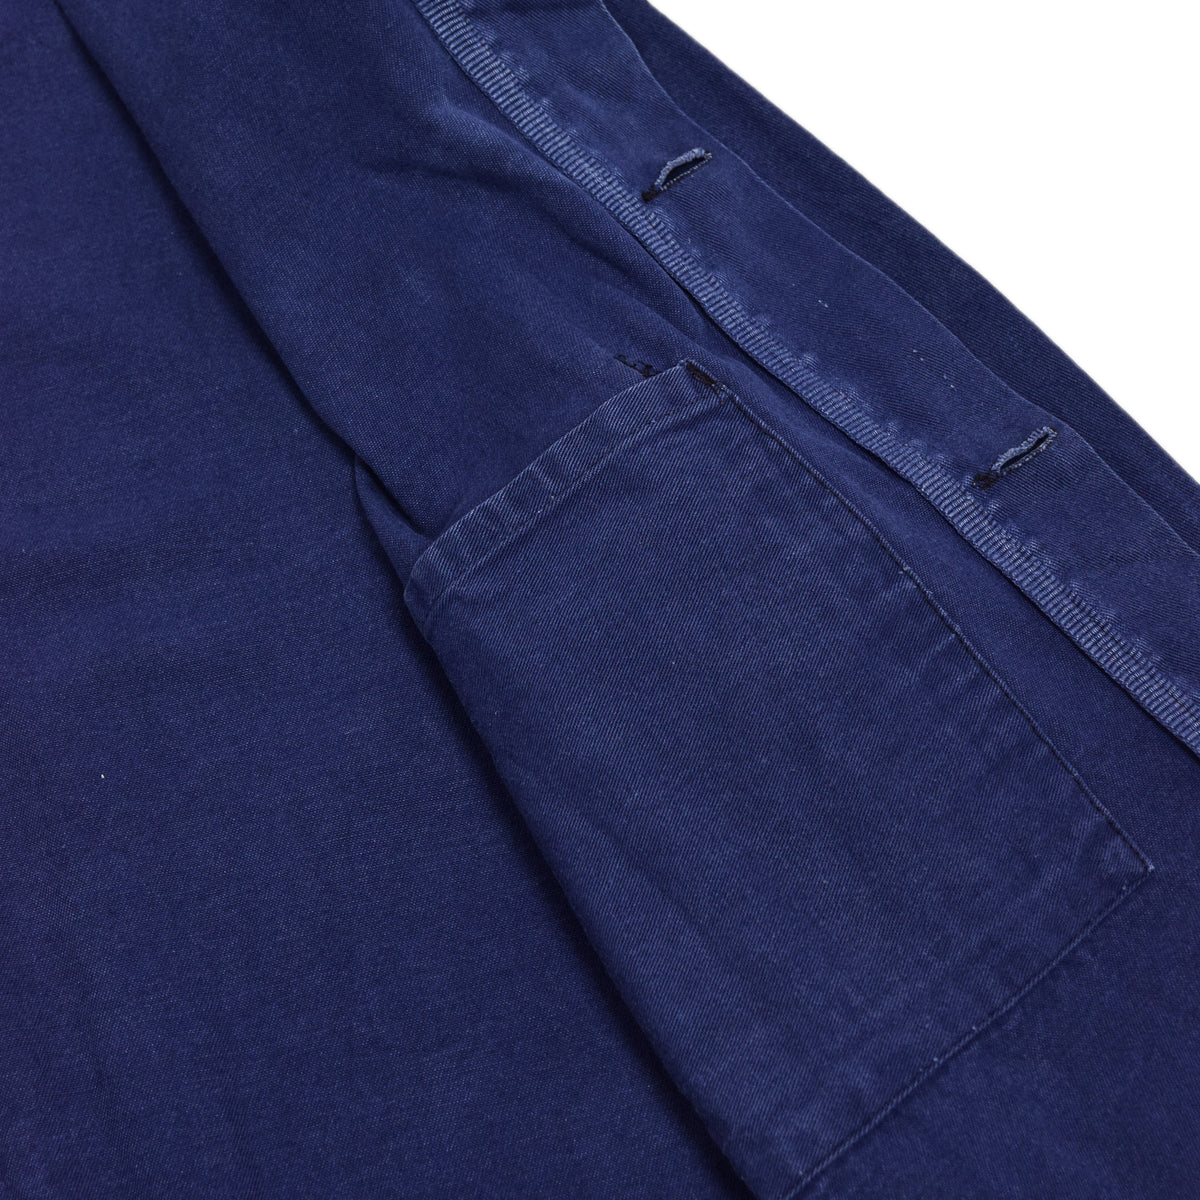 Vintage Indigo Blue French Worker Sanforized Cotton Twill Chore Jacket XXL INTERNAL POCKET